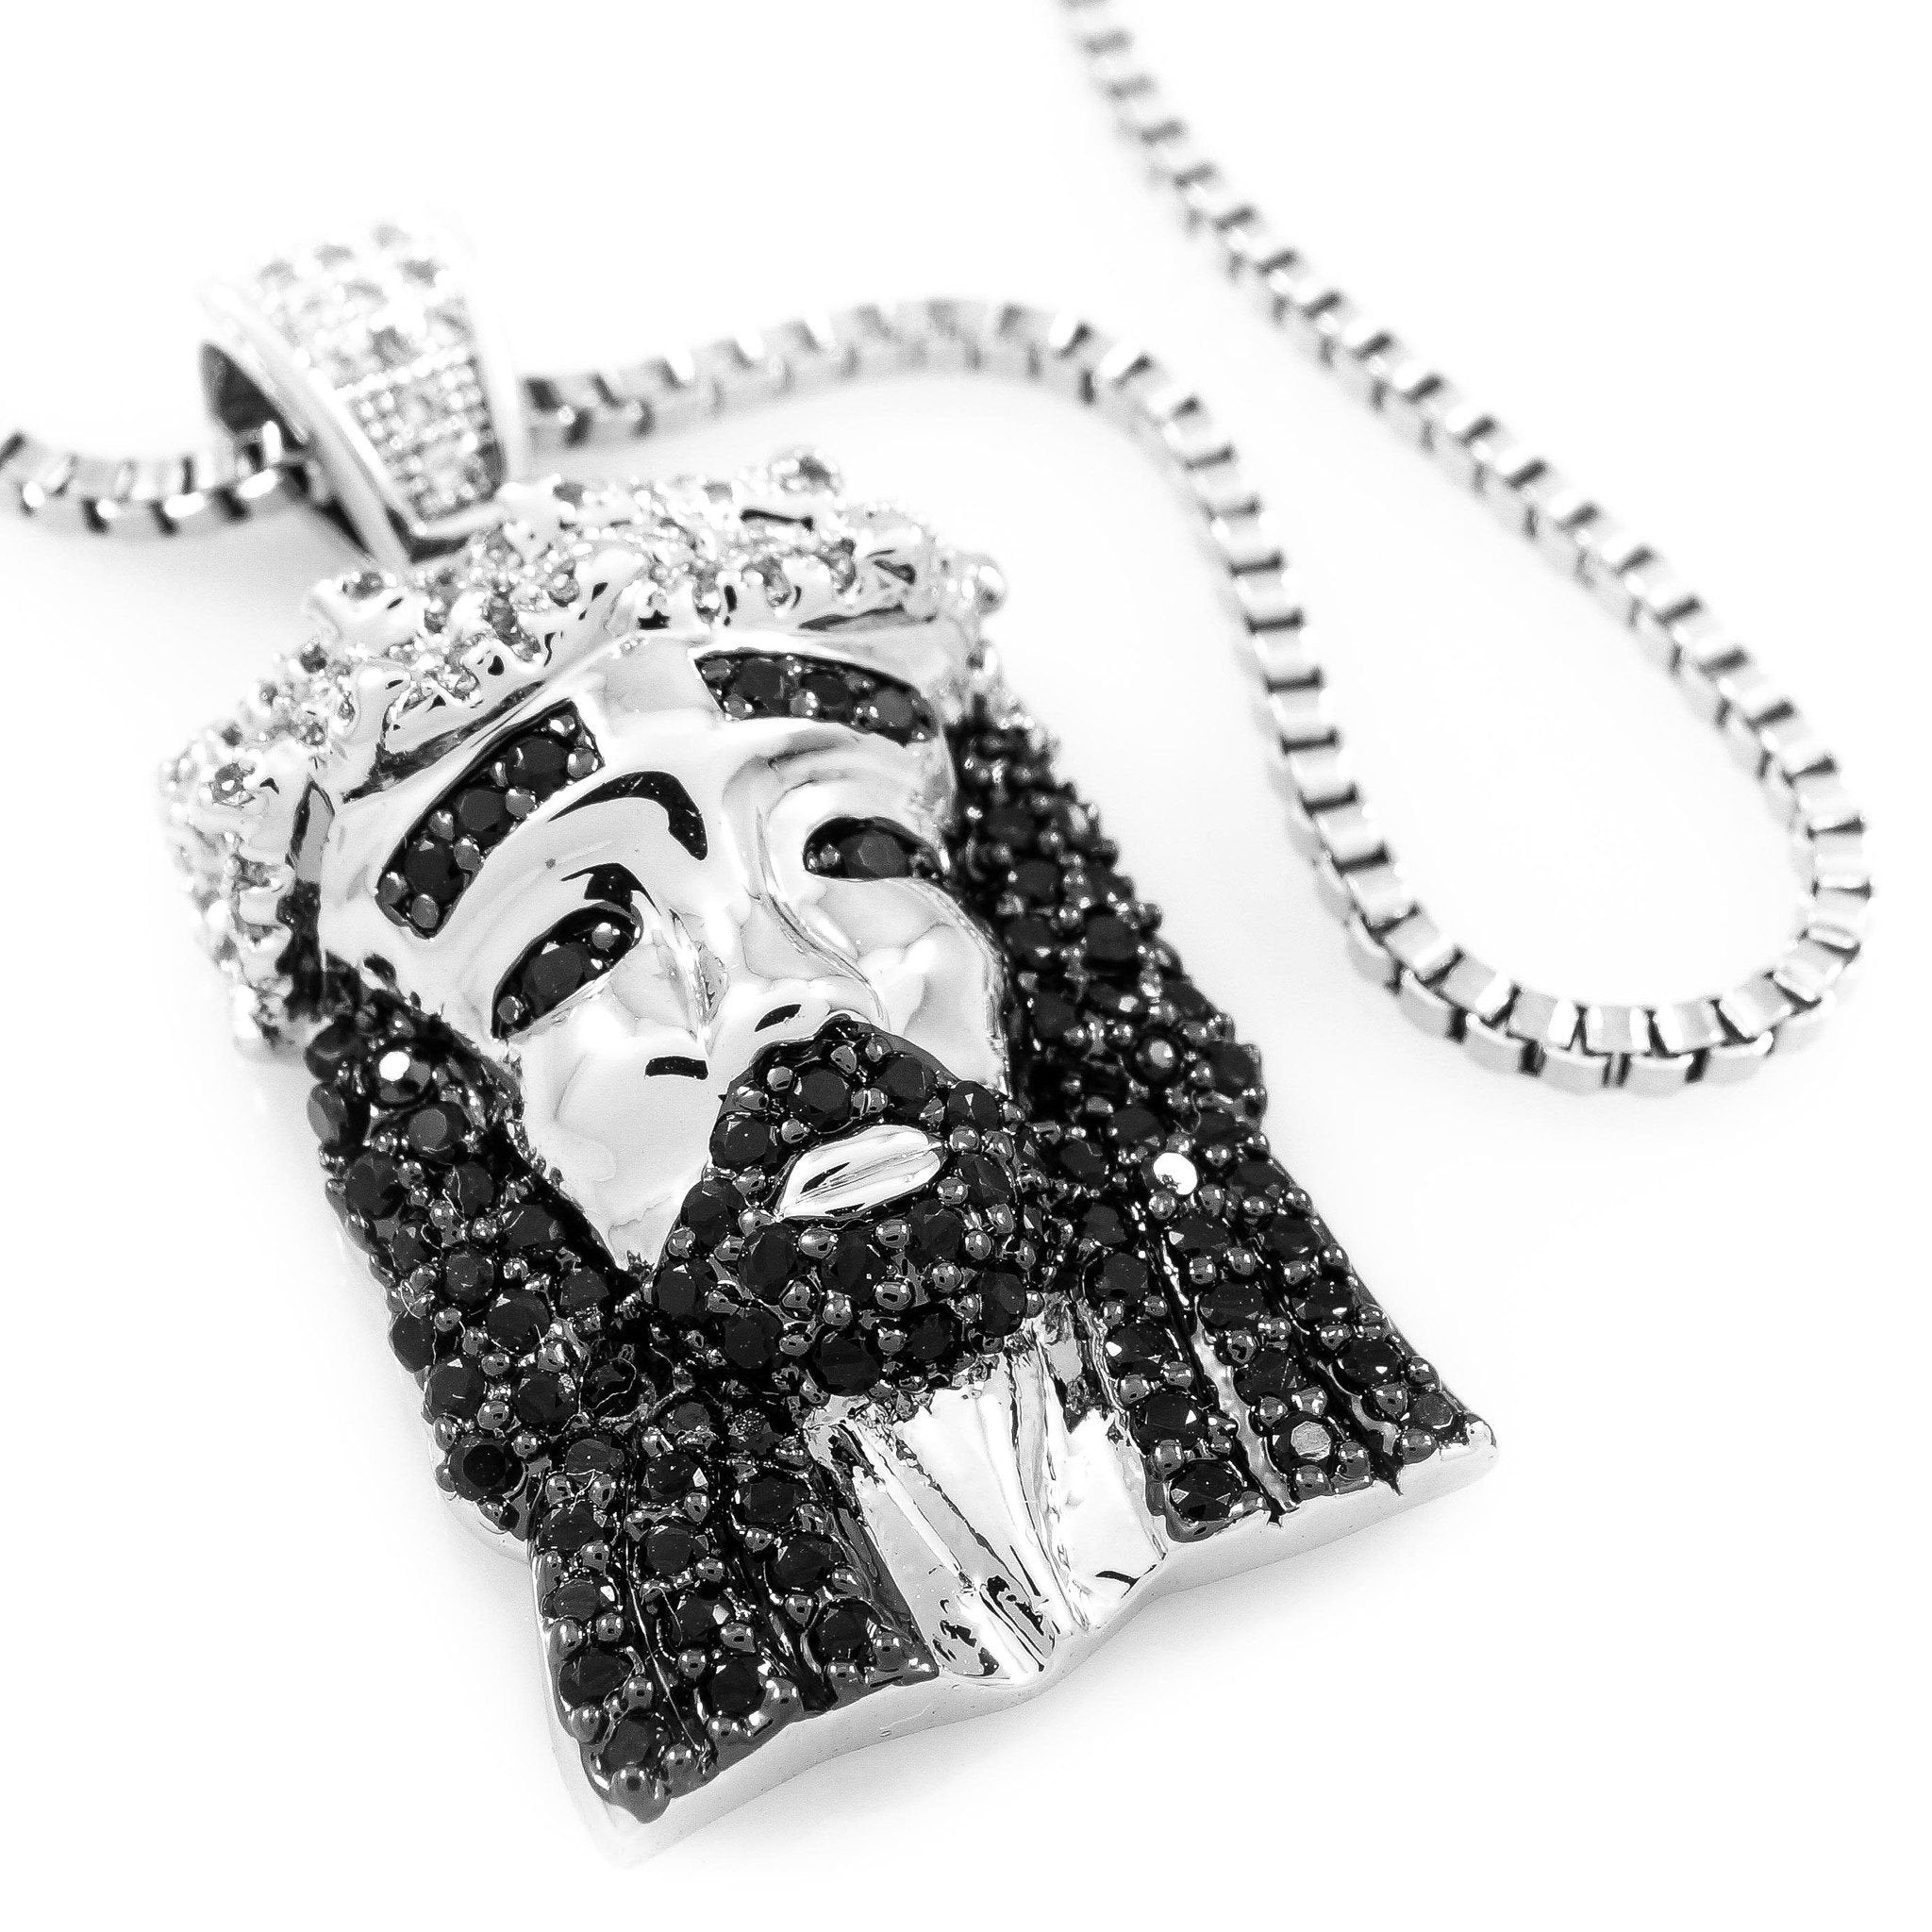 18k White Gold/Black CZ Iced Out Mini Jesus Piece 1 with Box Chain